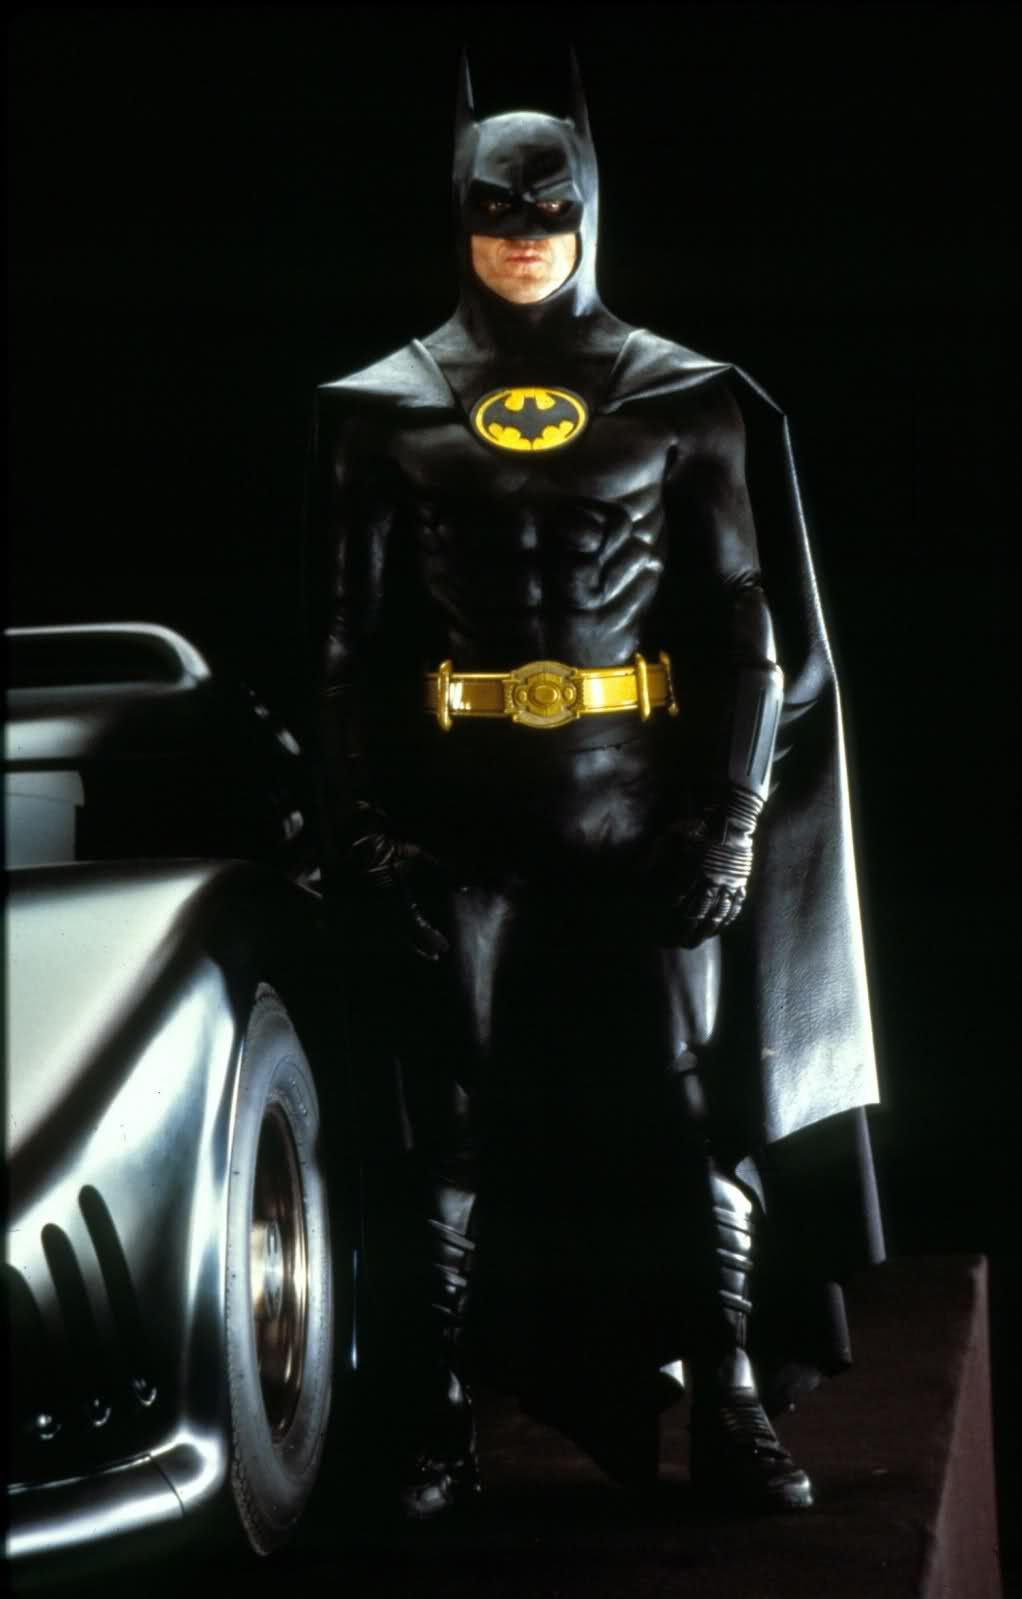 Michael Keaton as Batman 1989-92